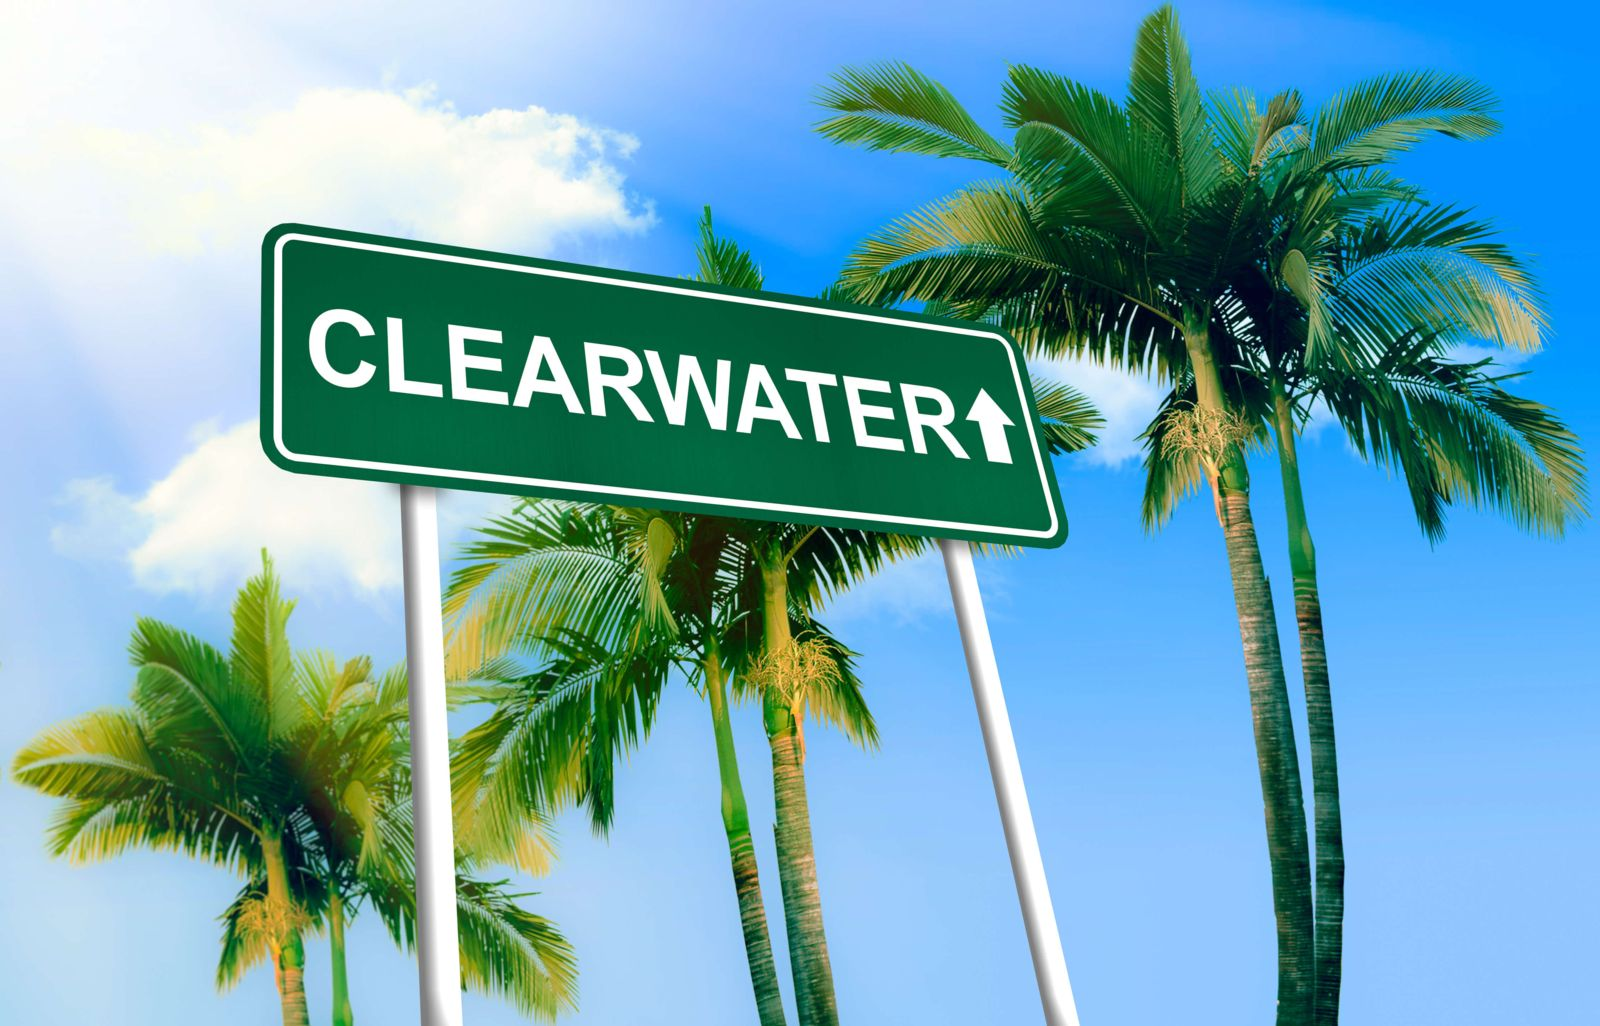 Clearwater Personal Injury Lawyers